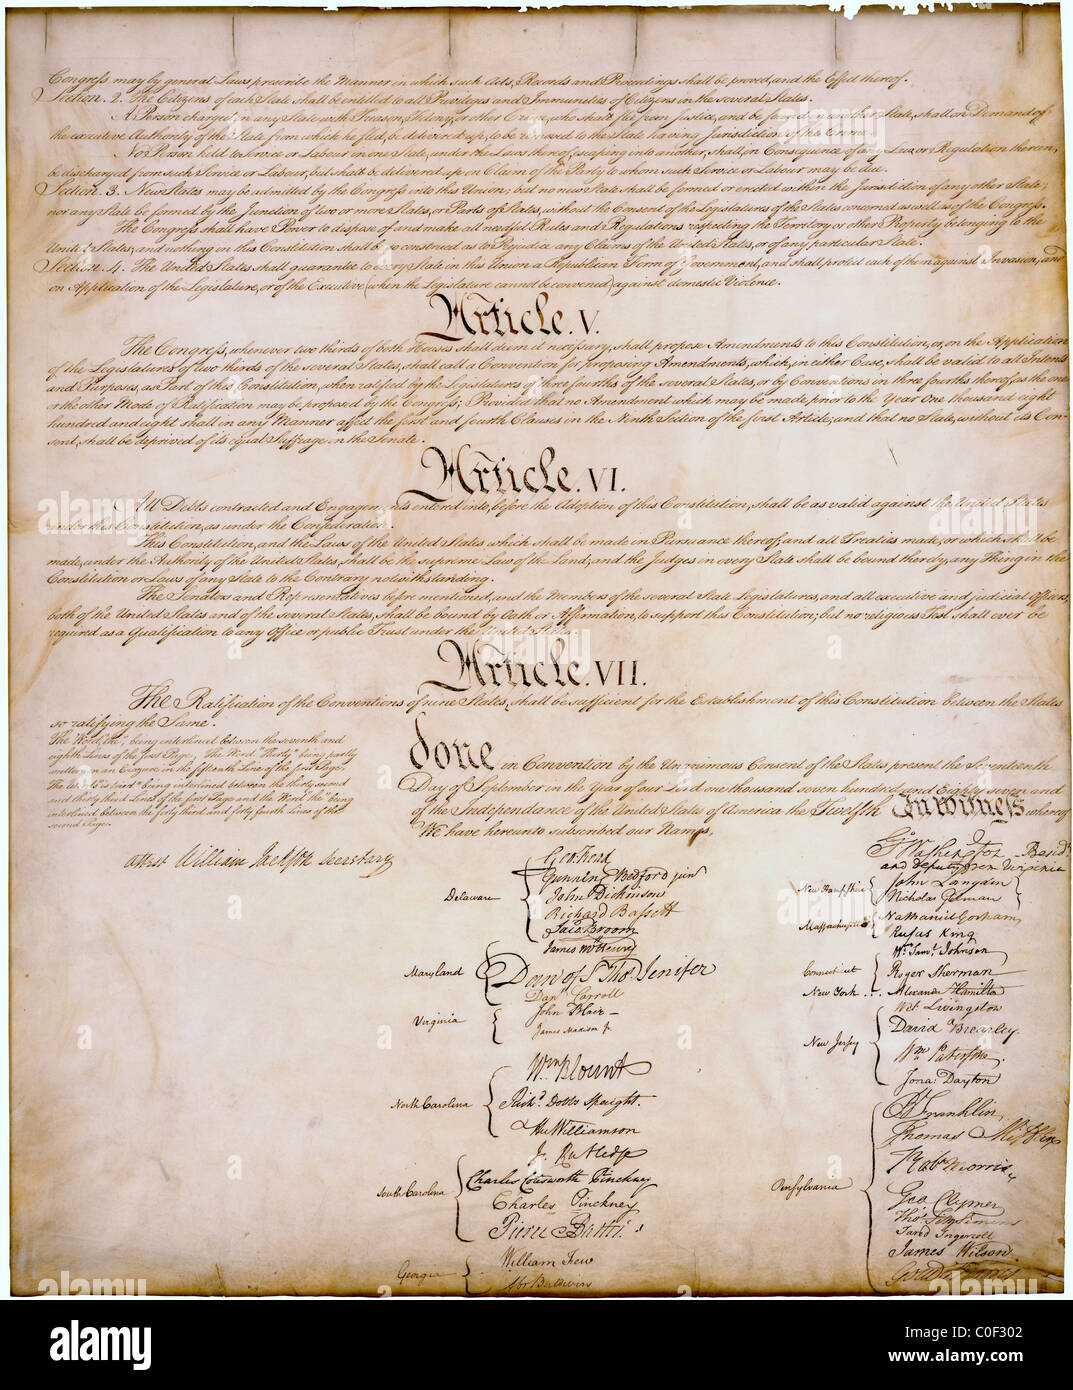 Constitution 1787 Stock Photos & Constitution 1787 Stock Images - Alamy